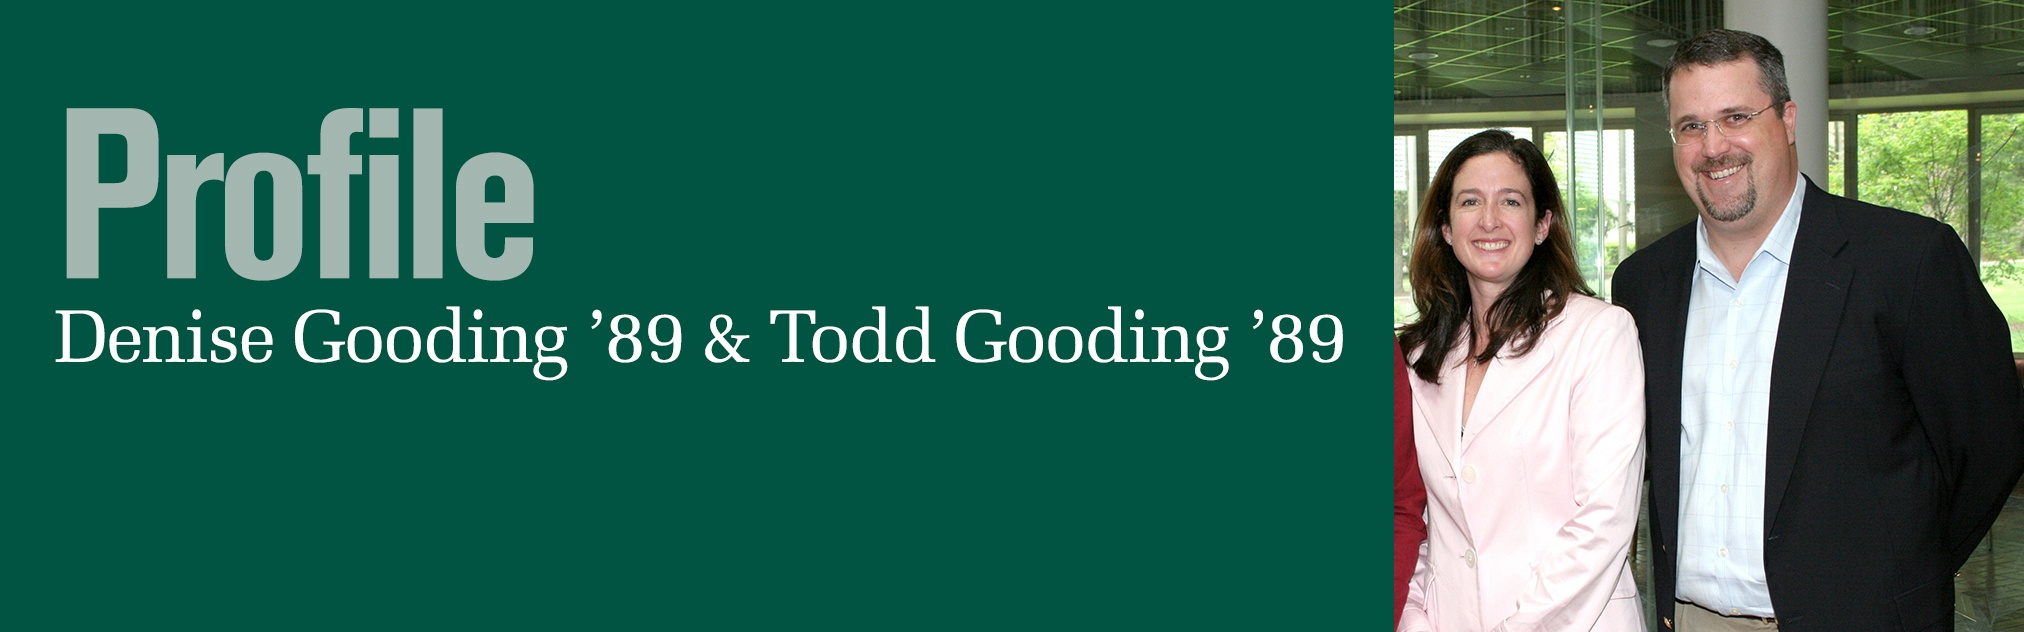 Profile - Denise Gooding '89 and Todd Gooding '89